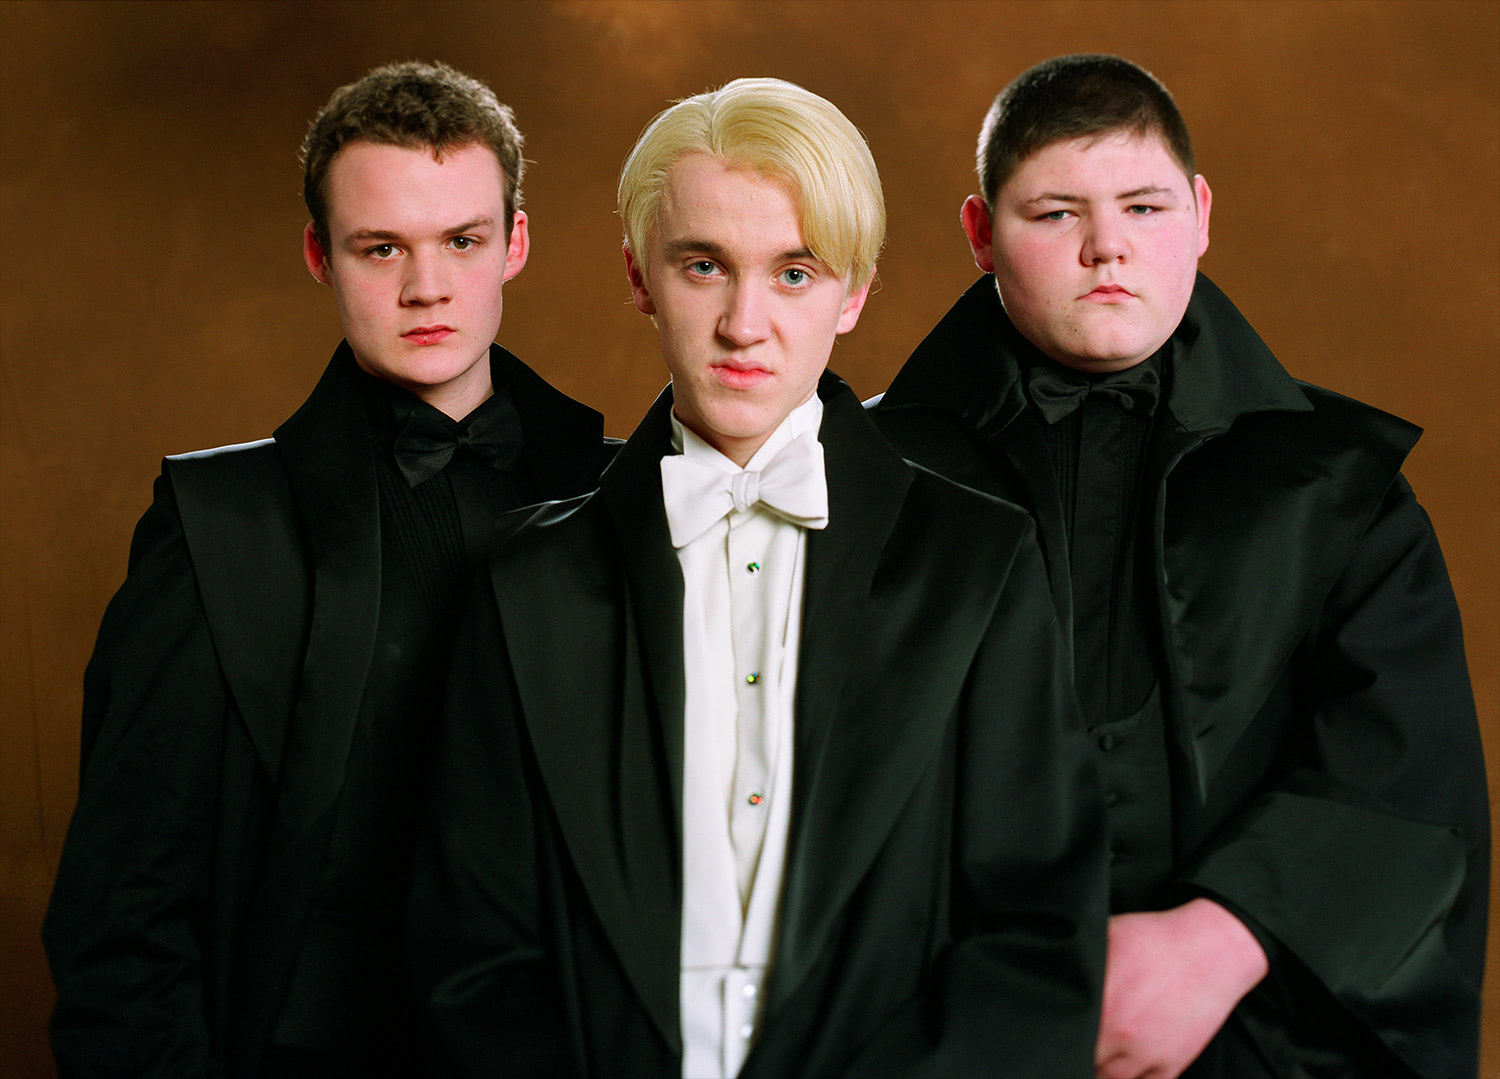 Goyle, Draco and Crabbe Yule Ball portrait